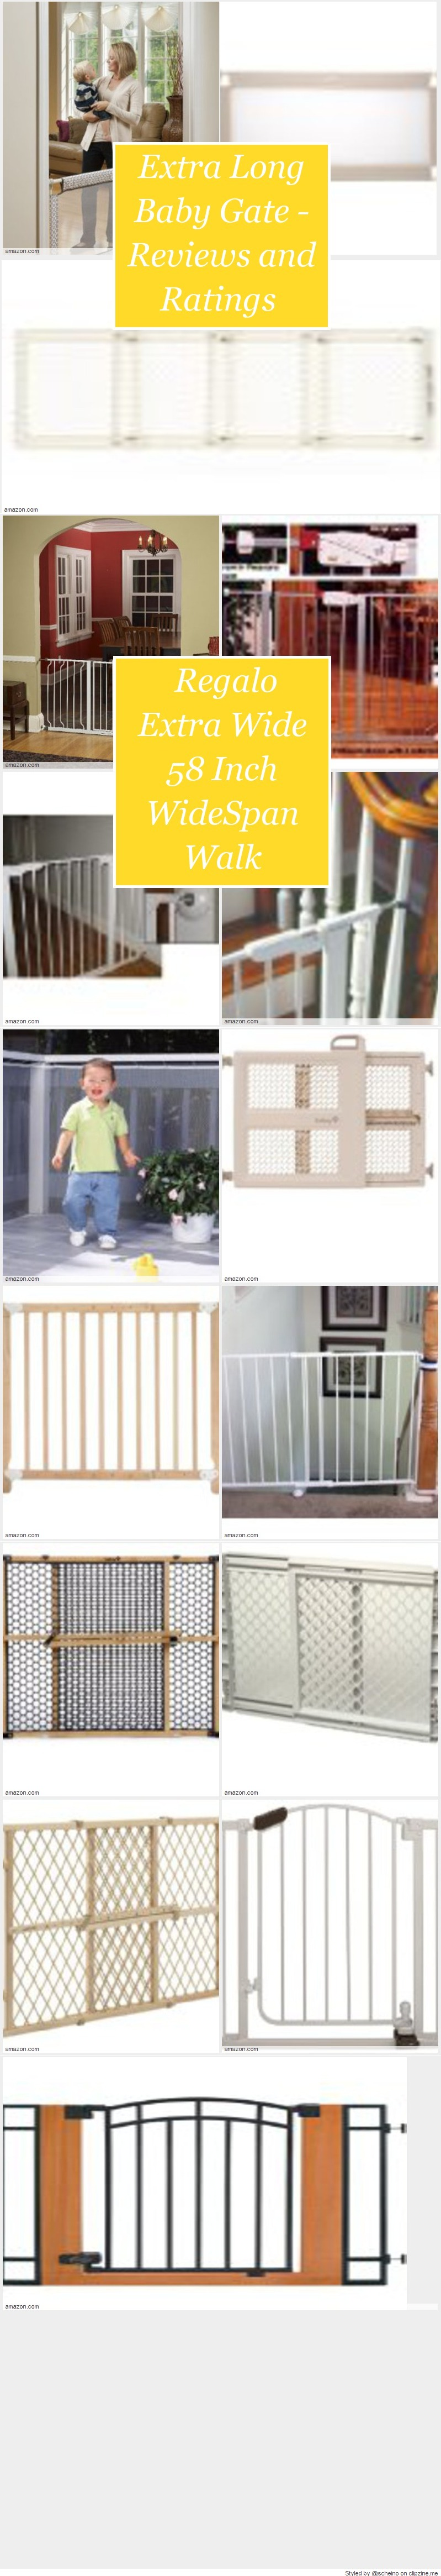 Extra Long Baby Gate Reviews And Ratings Extra Long Baby Gate